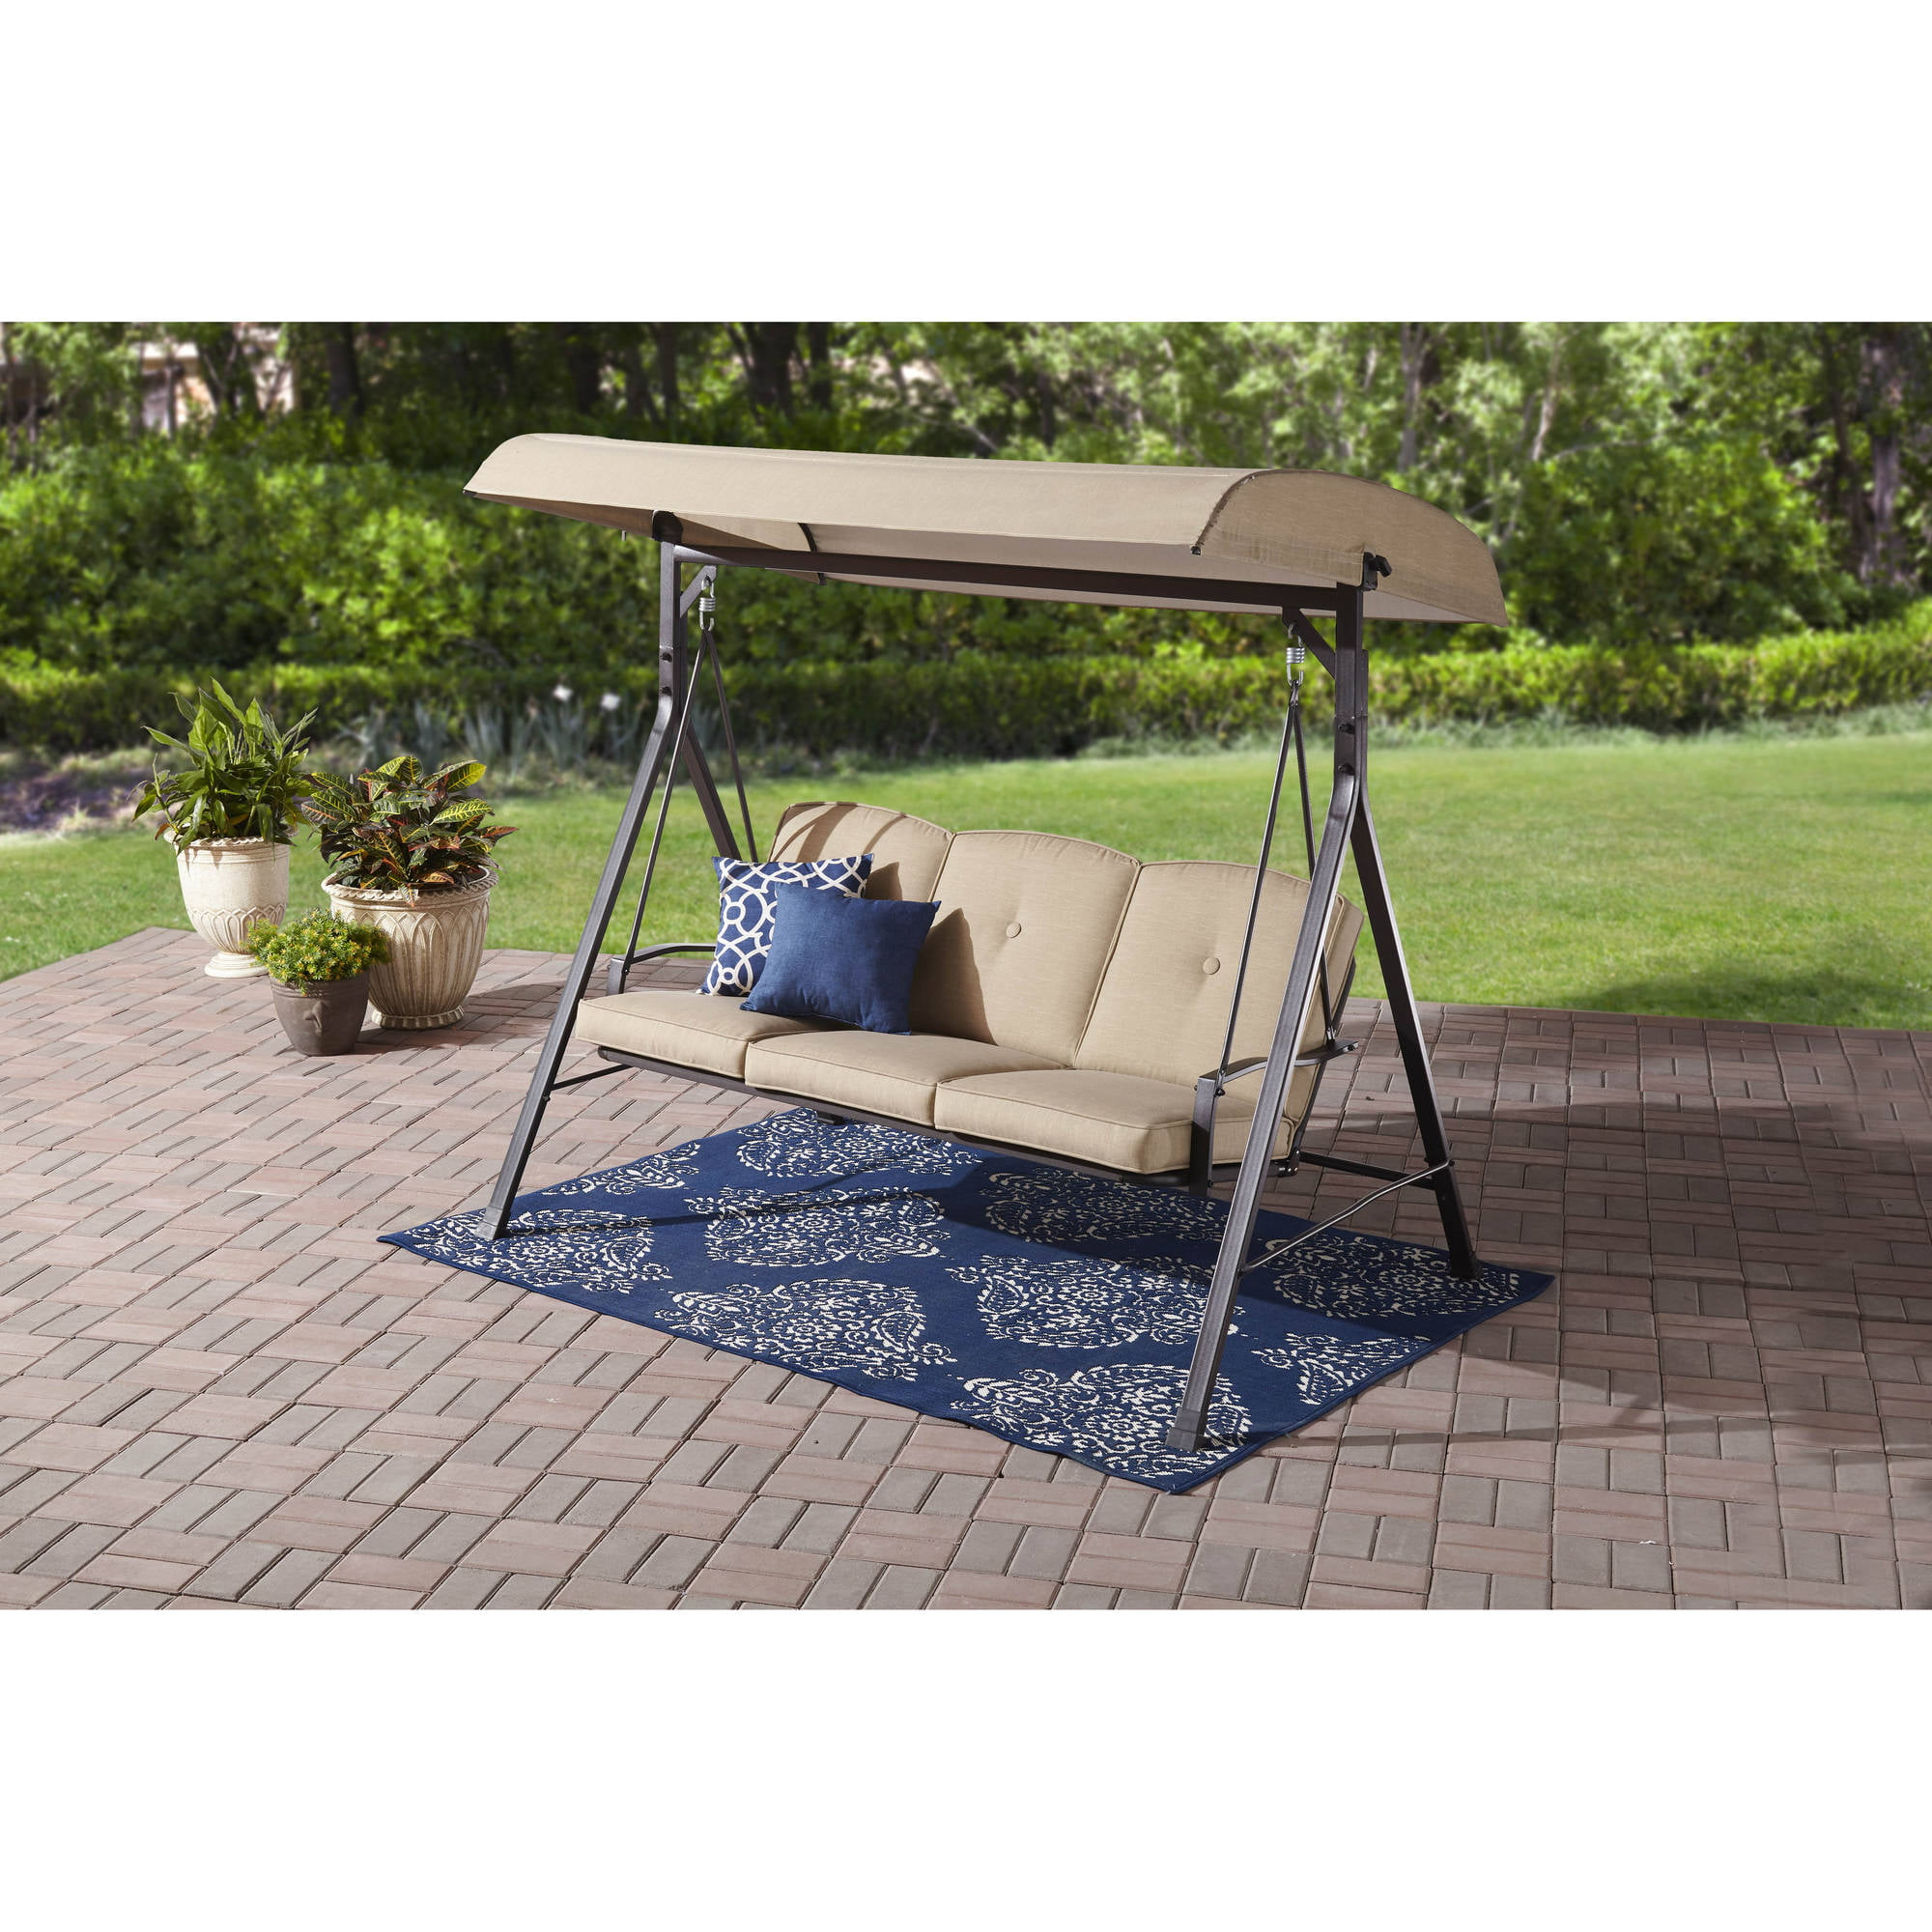 Mainstays Forest Hills 3-Seat Cushion Canopy Porch Swing by Porch Swings